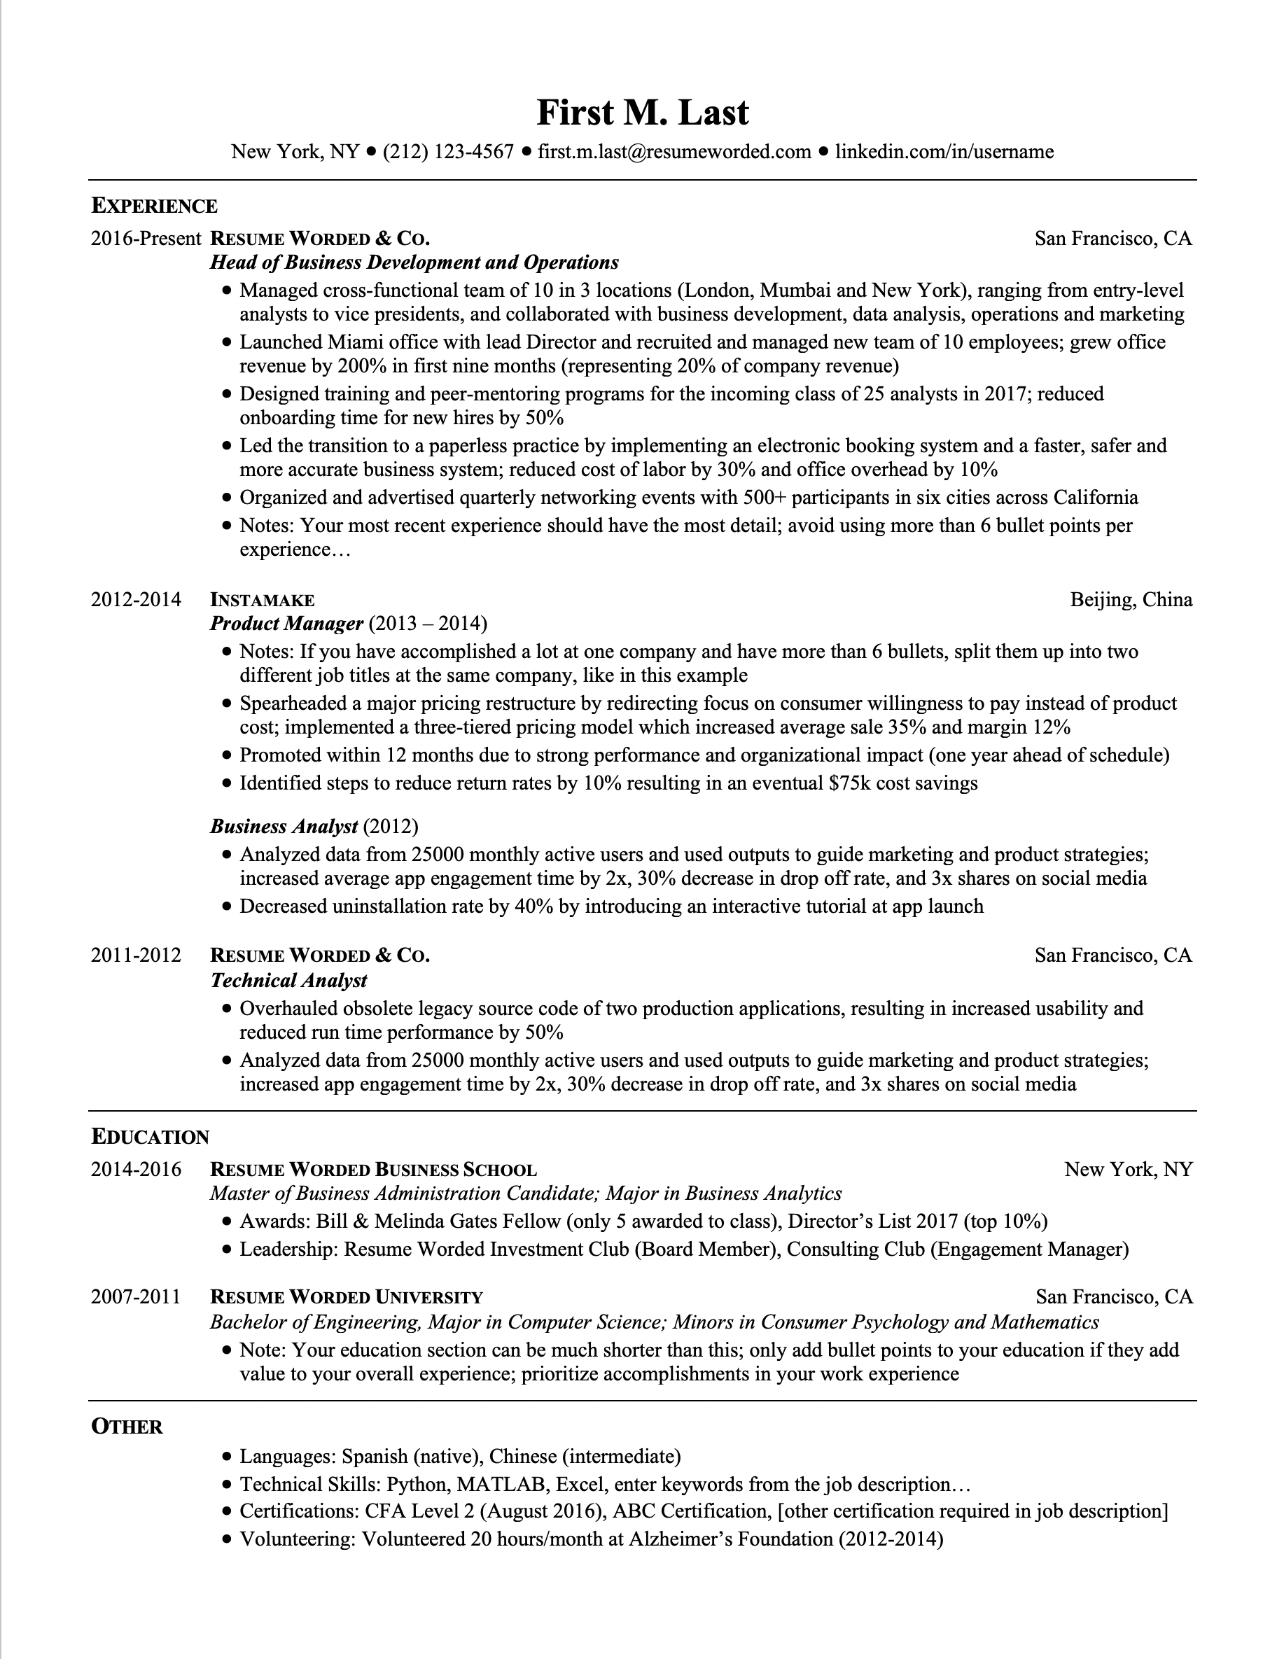 Screenshot of a modern resume template for graduates and experienced hires, updated for 2019